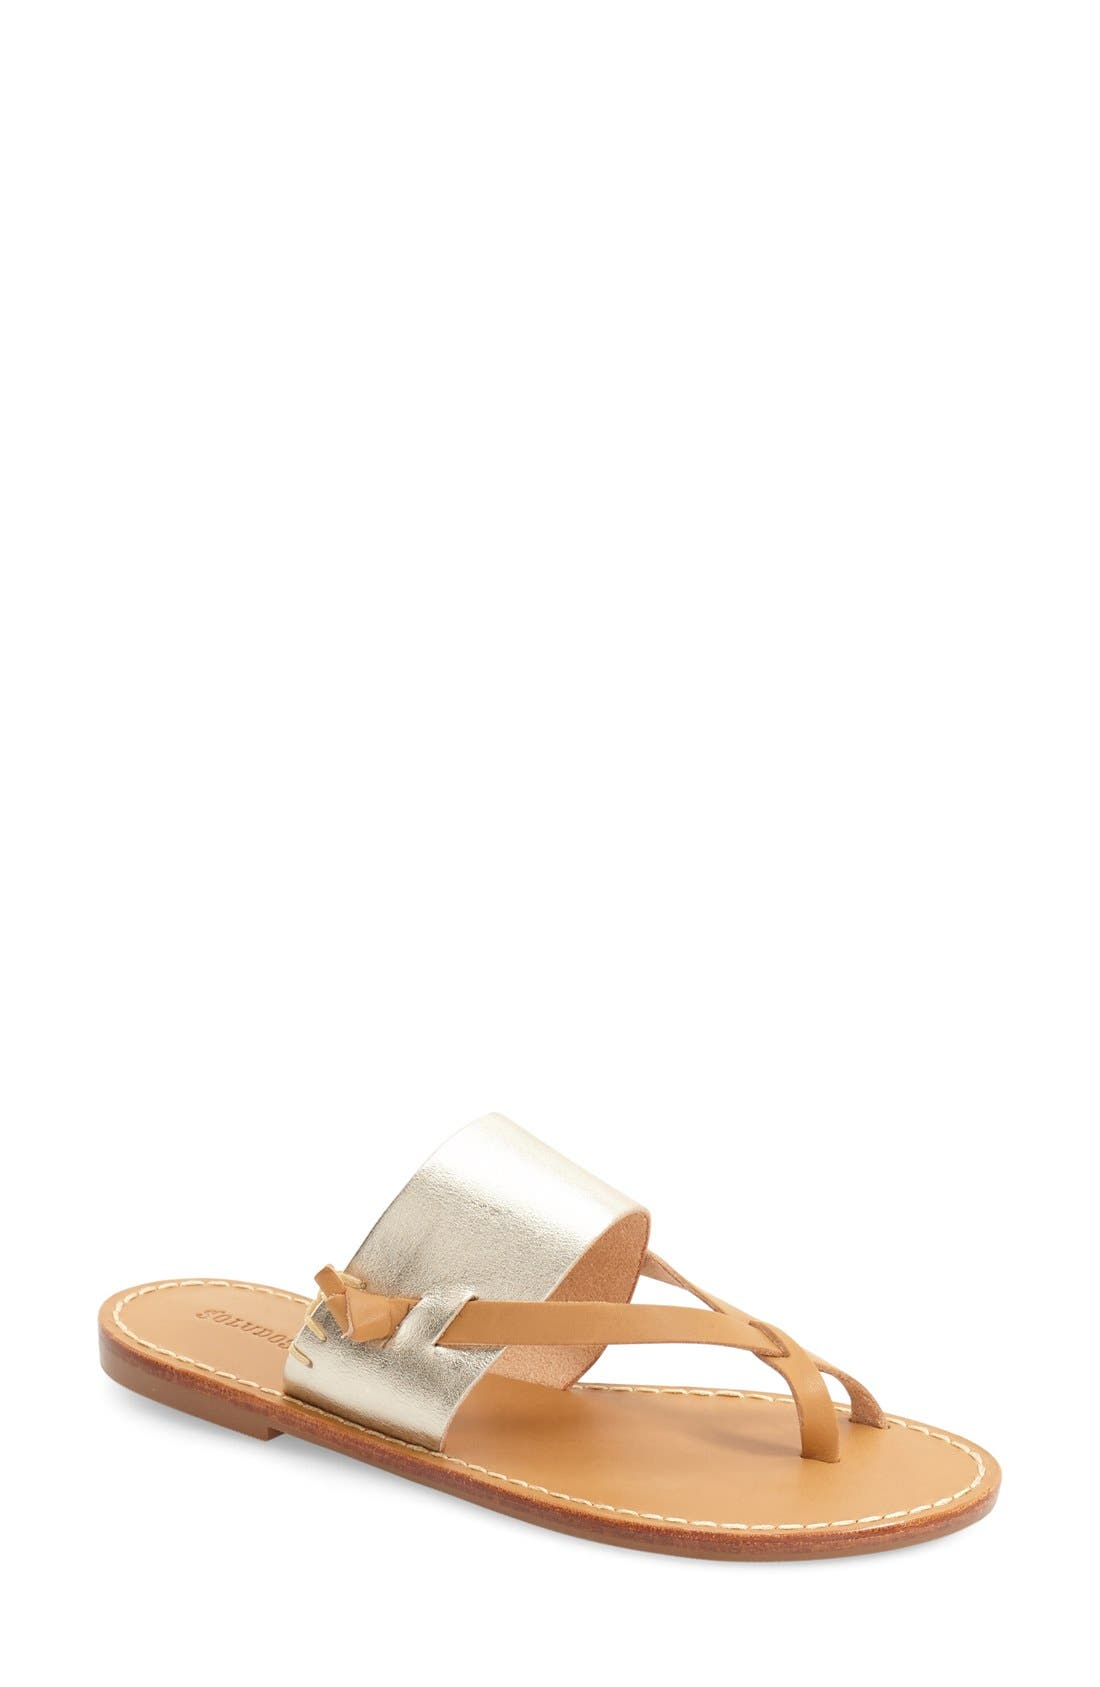 'Slotted' Thong Sandal,                         Main,                         color, METALLIC/ PLATINUM LEATHER